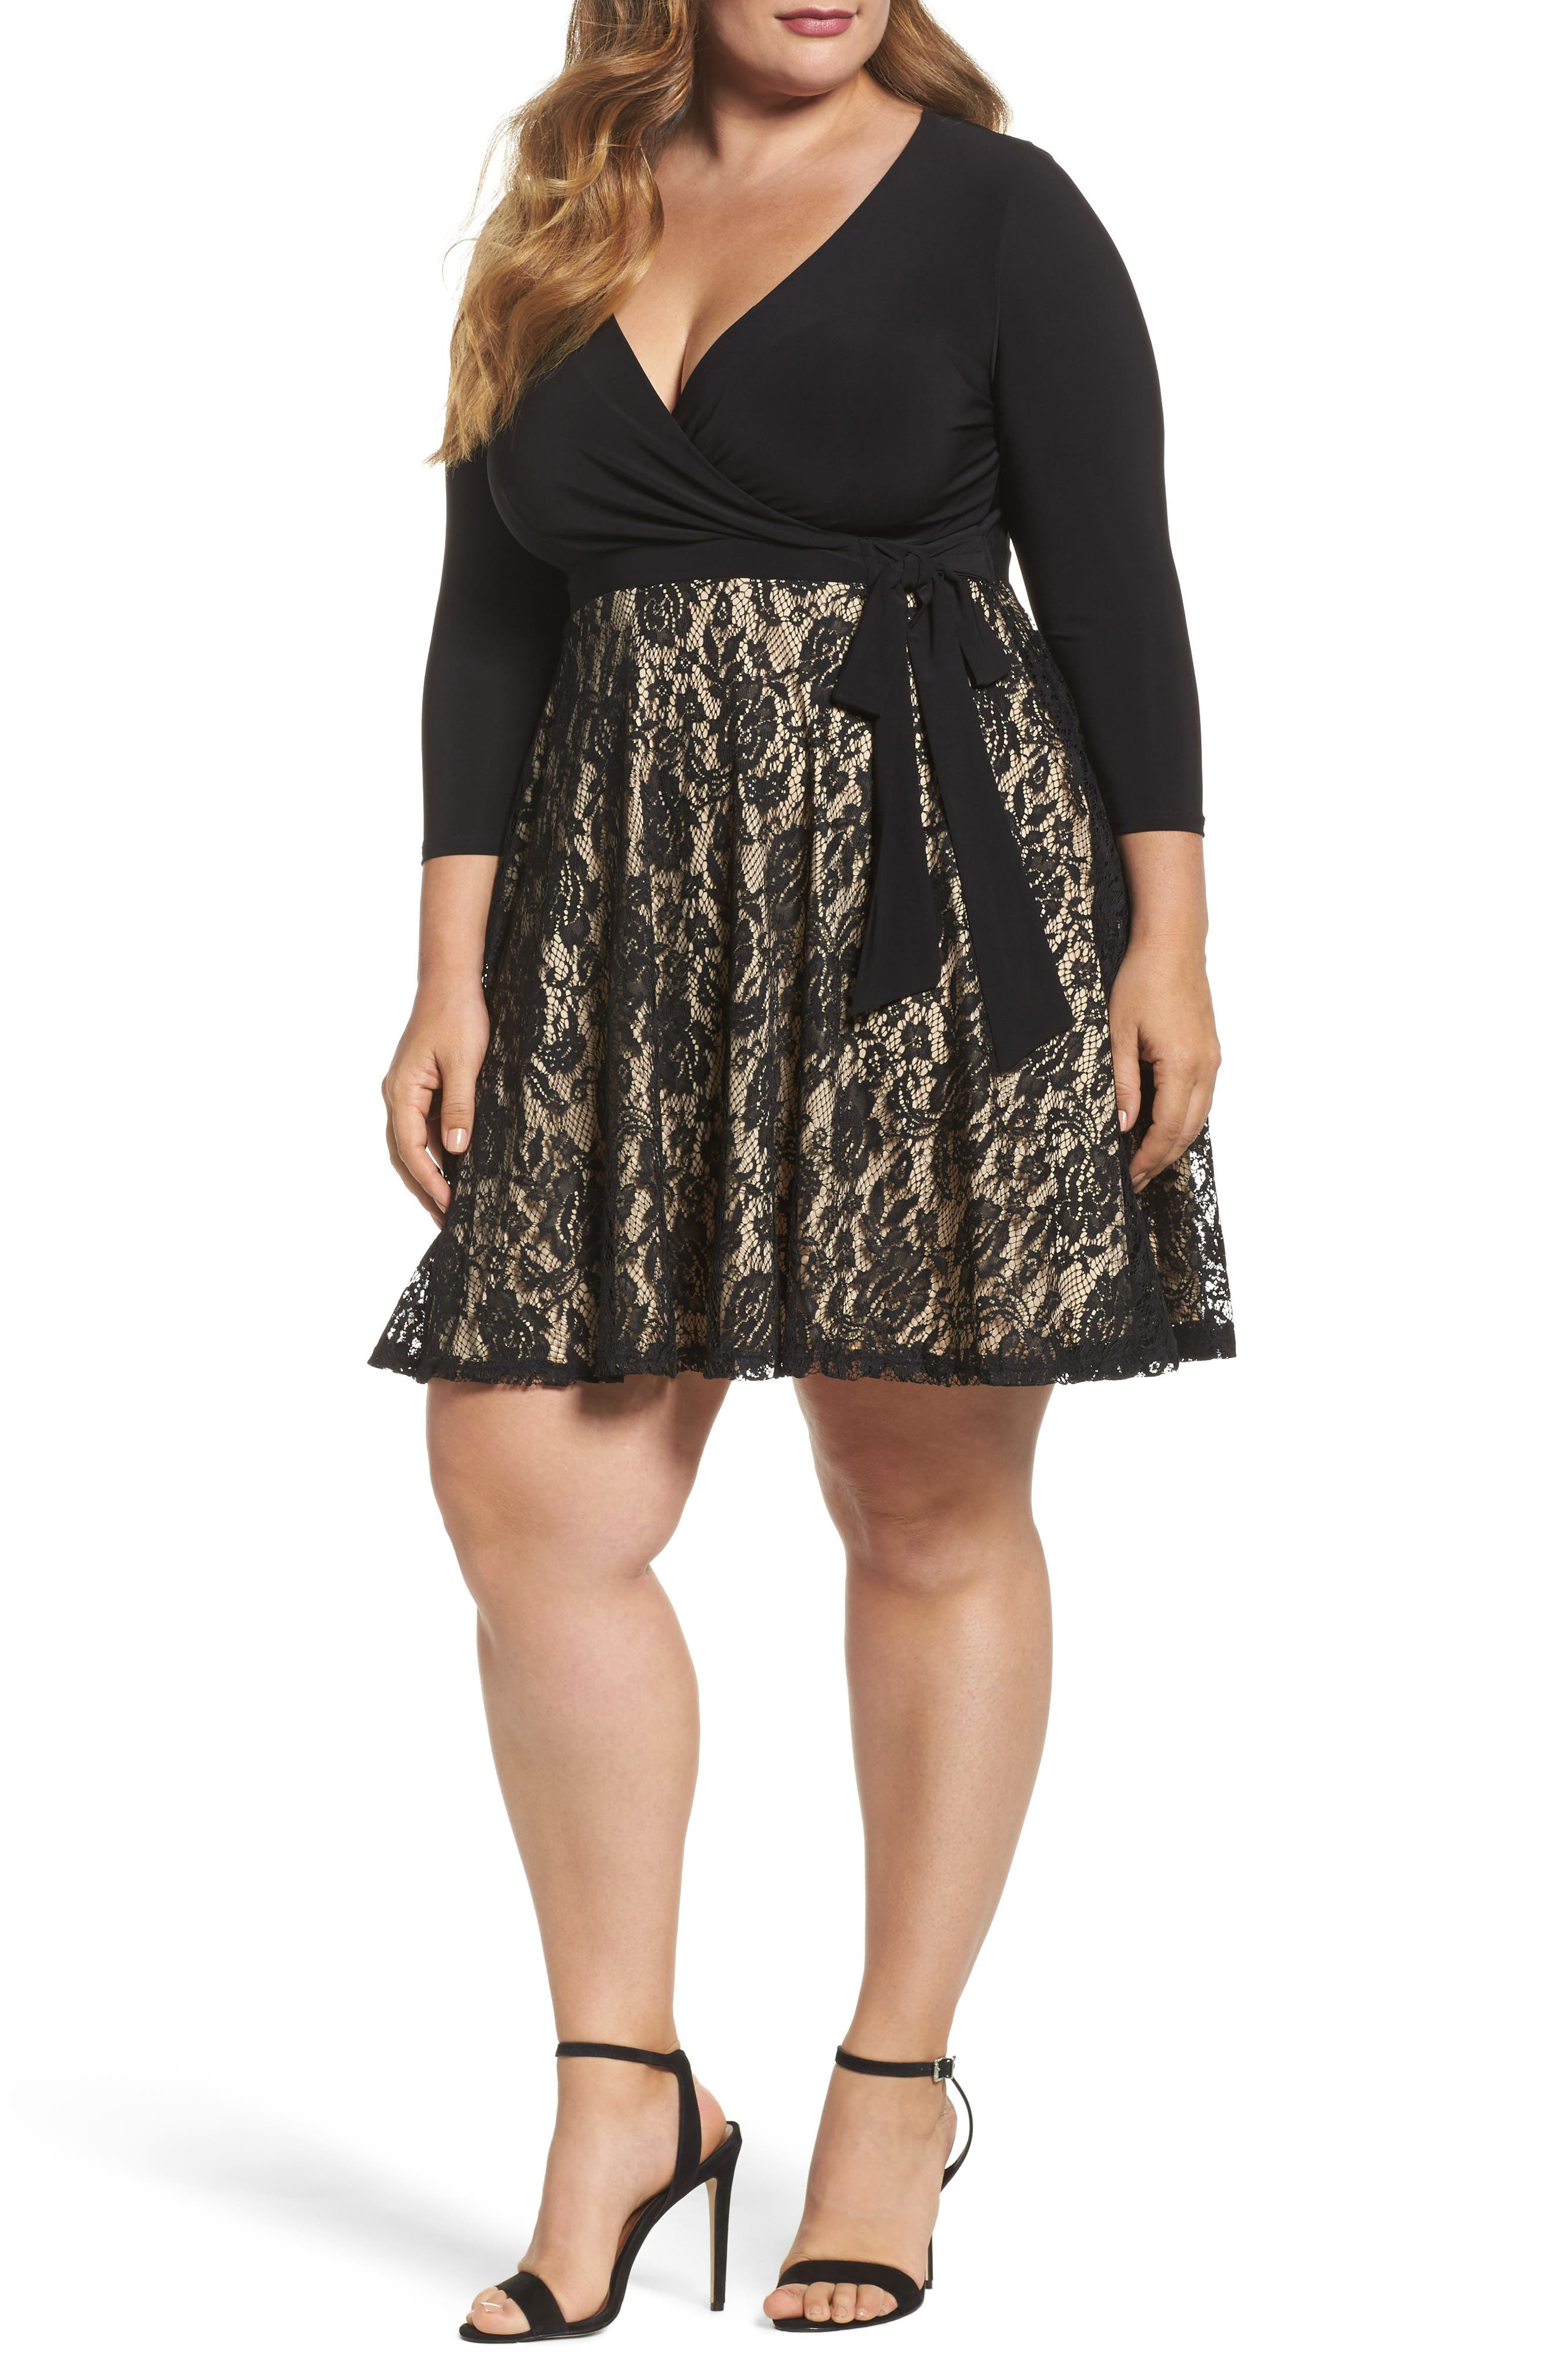 Lace Skirt Skater Dress,                             Main thumbnail 1, color,                             Black